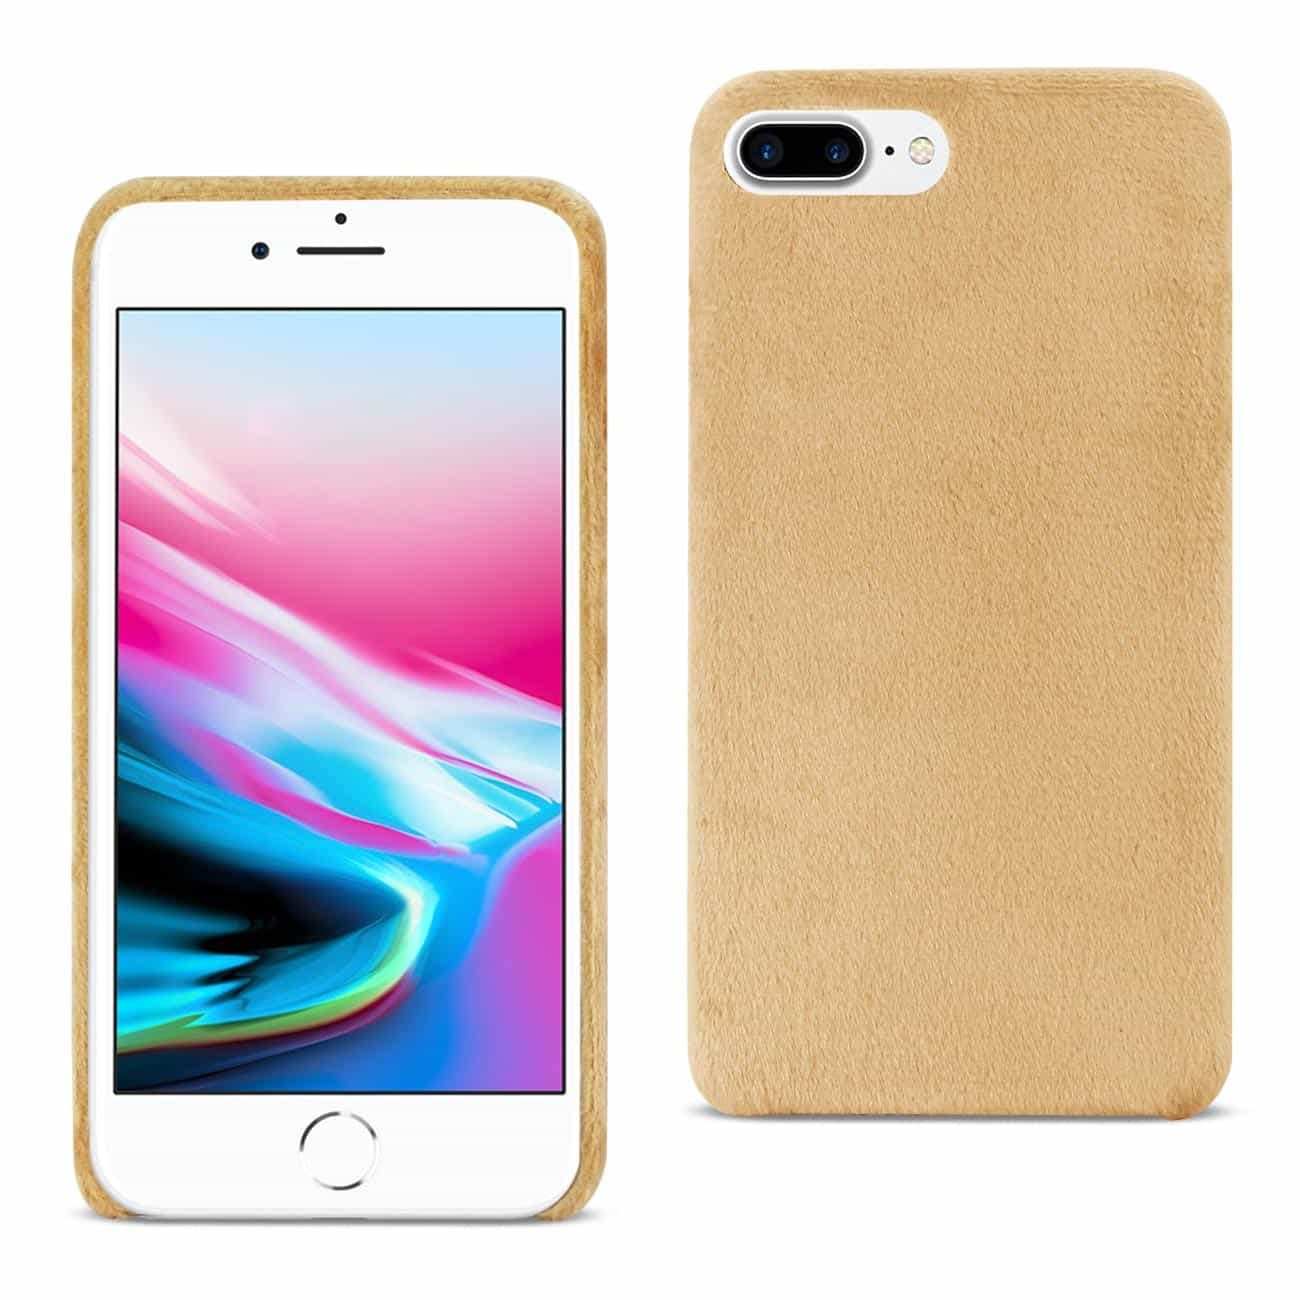 iPhone 8 Plus/ 7 Plus Fuzzy Fur Soft TPU Case In Camel